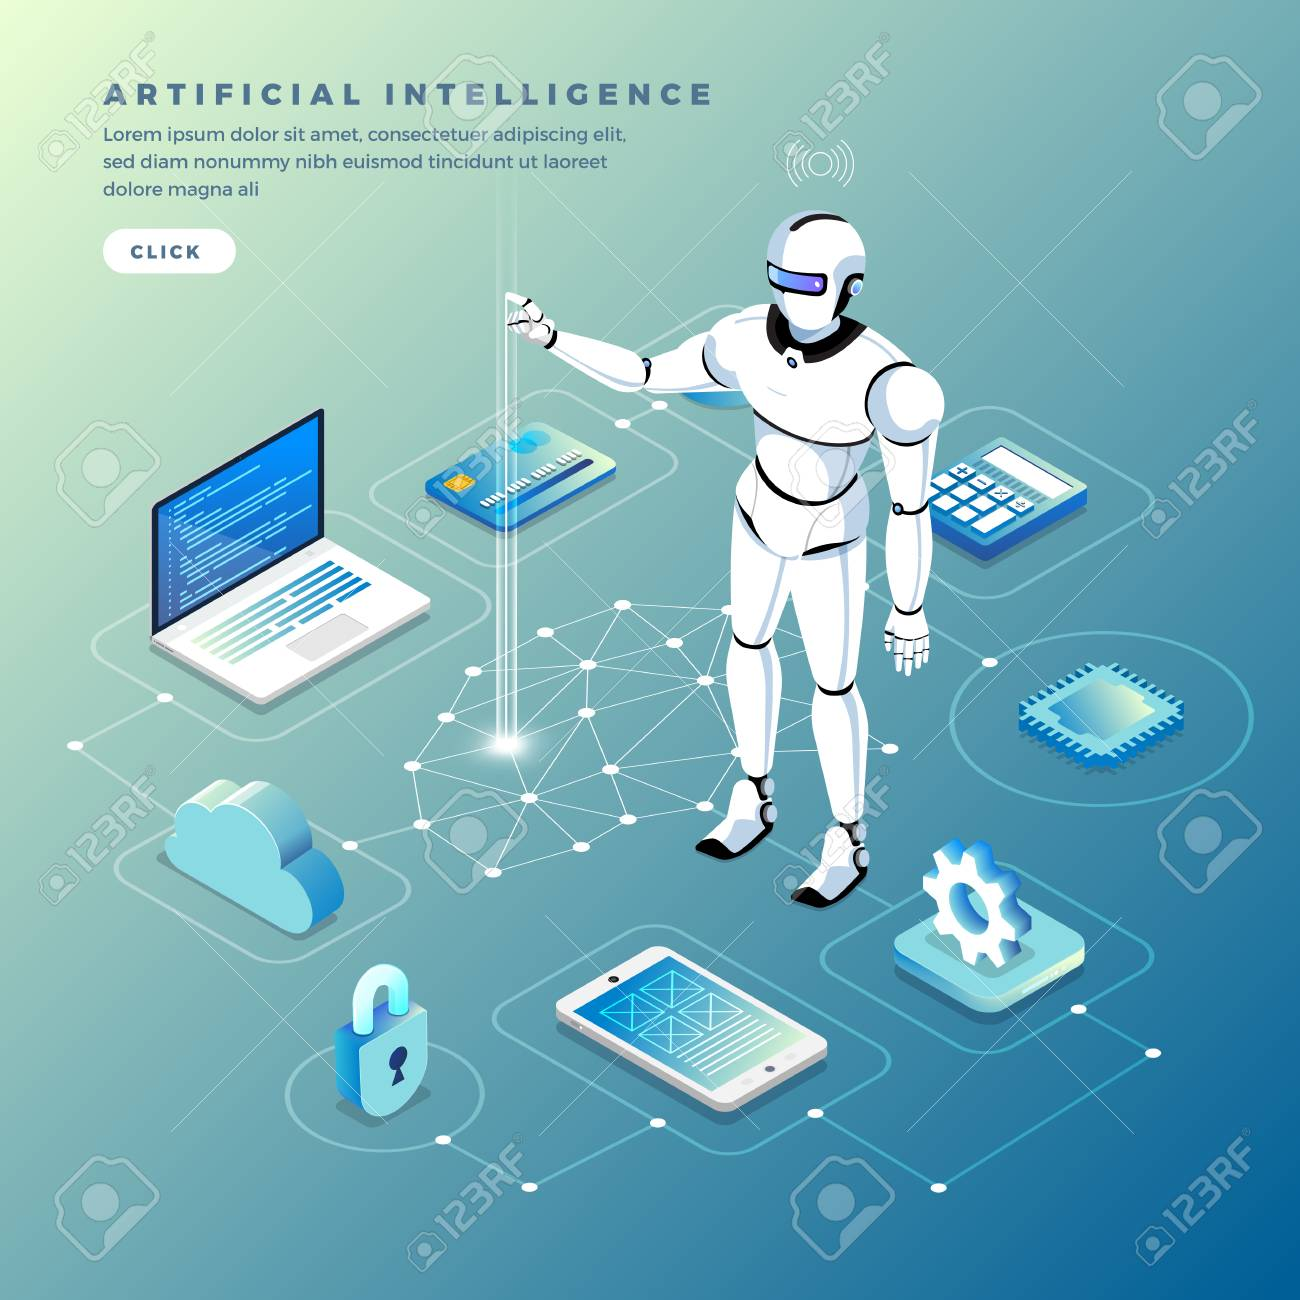 Illustrations concept artificial intelligence AI. Technology working with smart brain computer and machine connecting device. Isometric vector illustrate. - 107941748